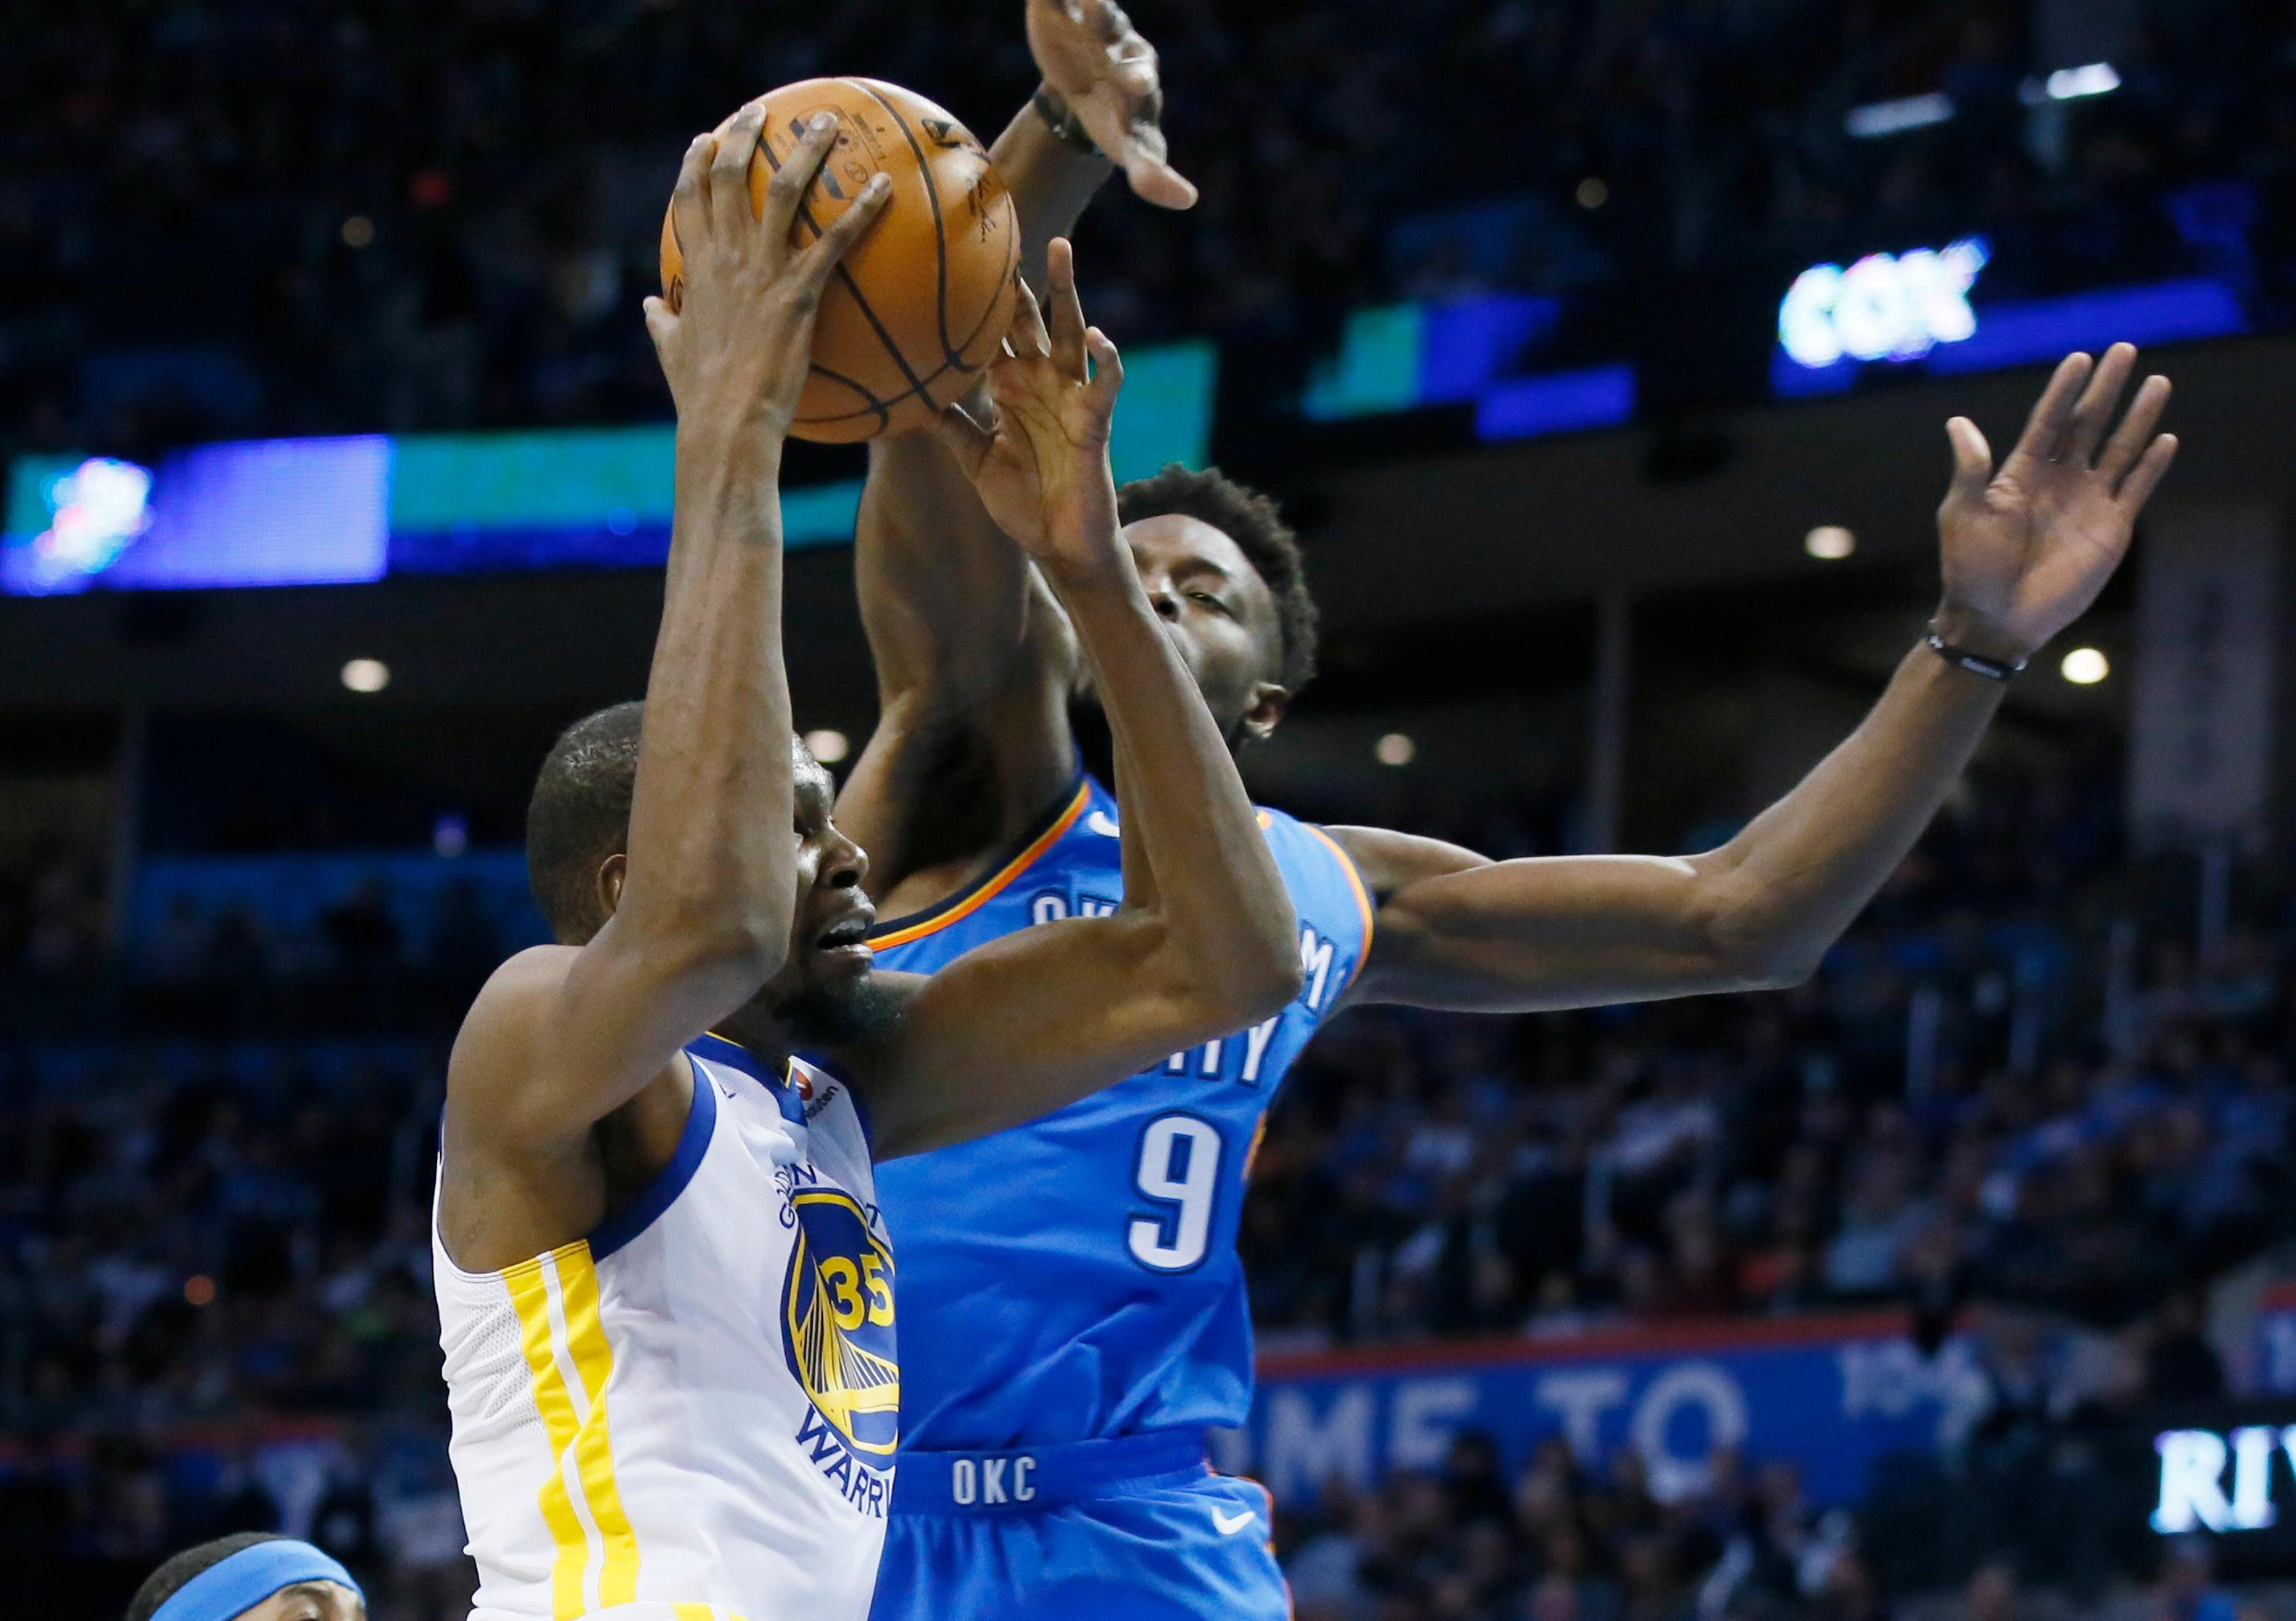 Golden State Warriors forward Kevin Durant, left, has a shot blocked by Oklahoma City Thunder forward Jerami Grant (9) during the first quarter of an NBA basketball game in Oklahoma City, Wednesday, Nov. 22, 2017. (AP Photo/Sue Ogrocki)